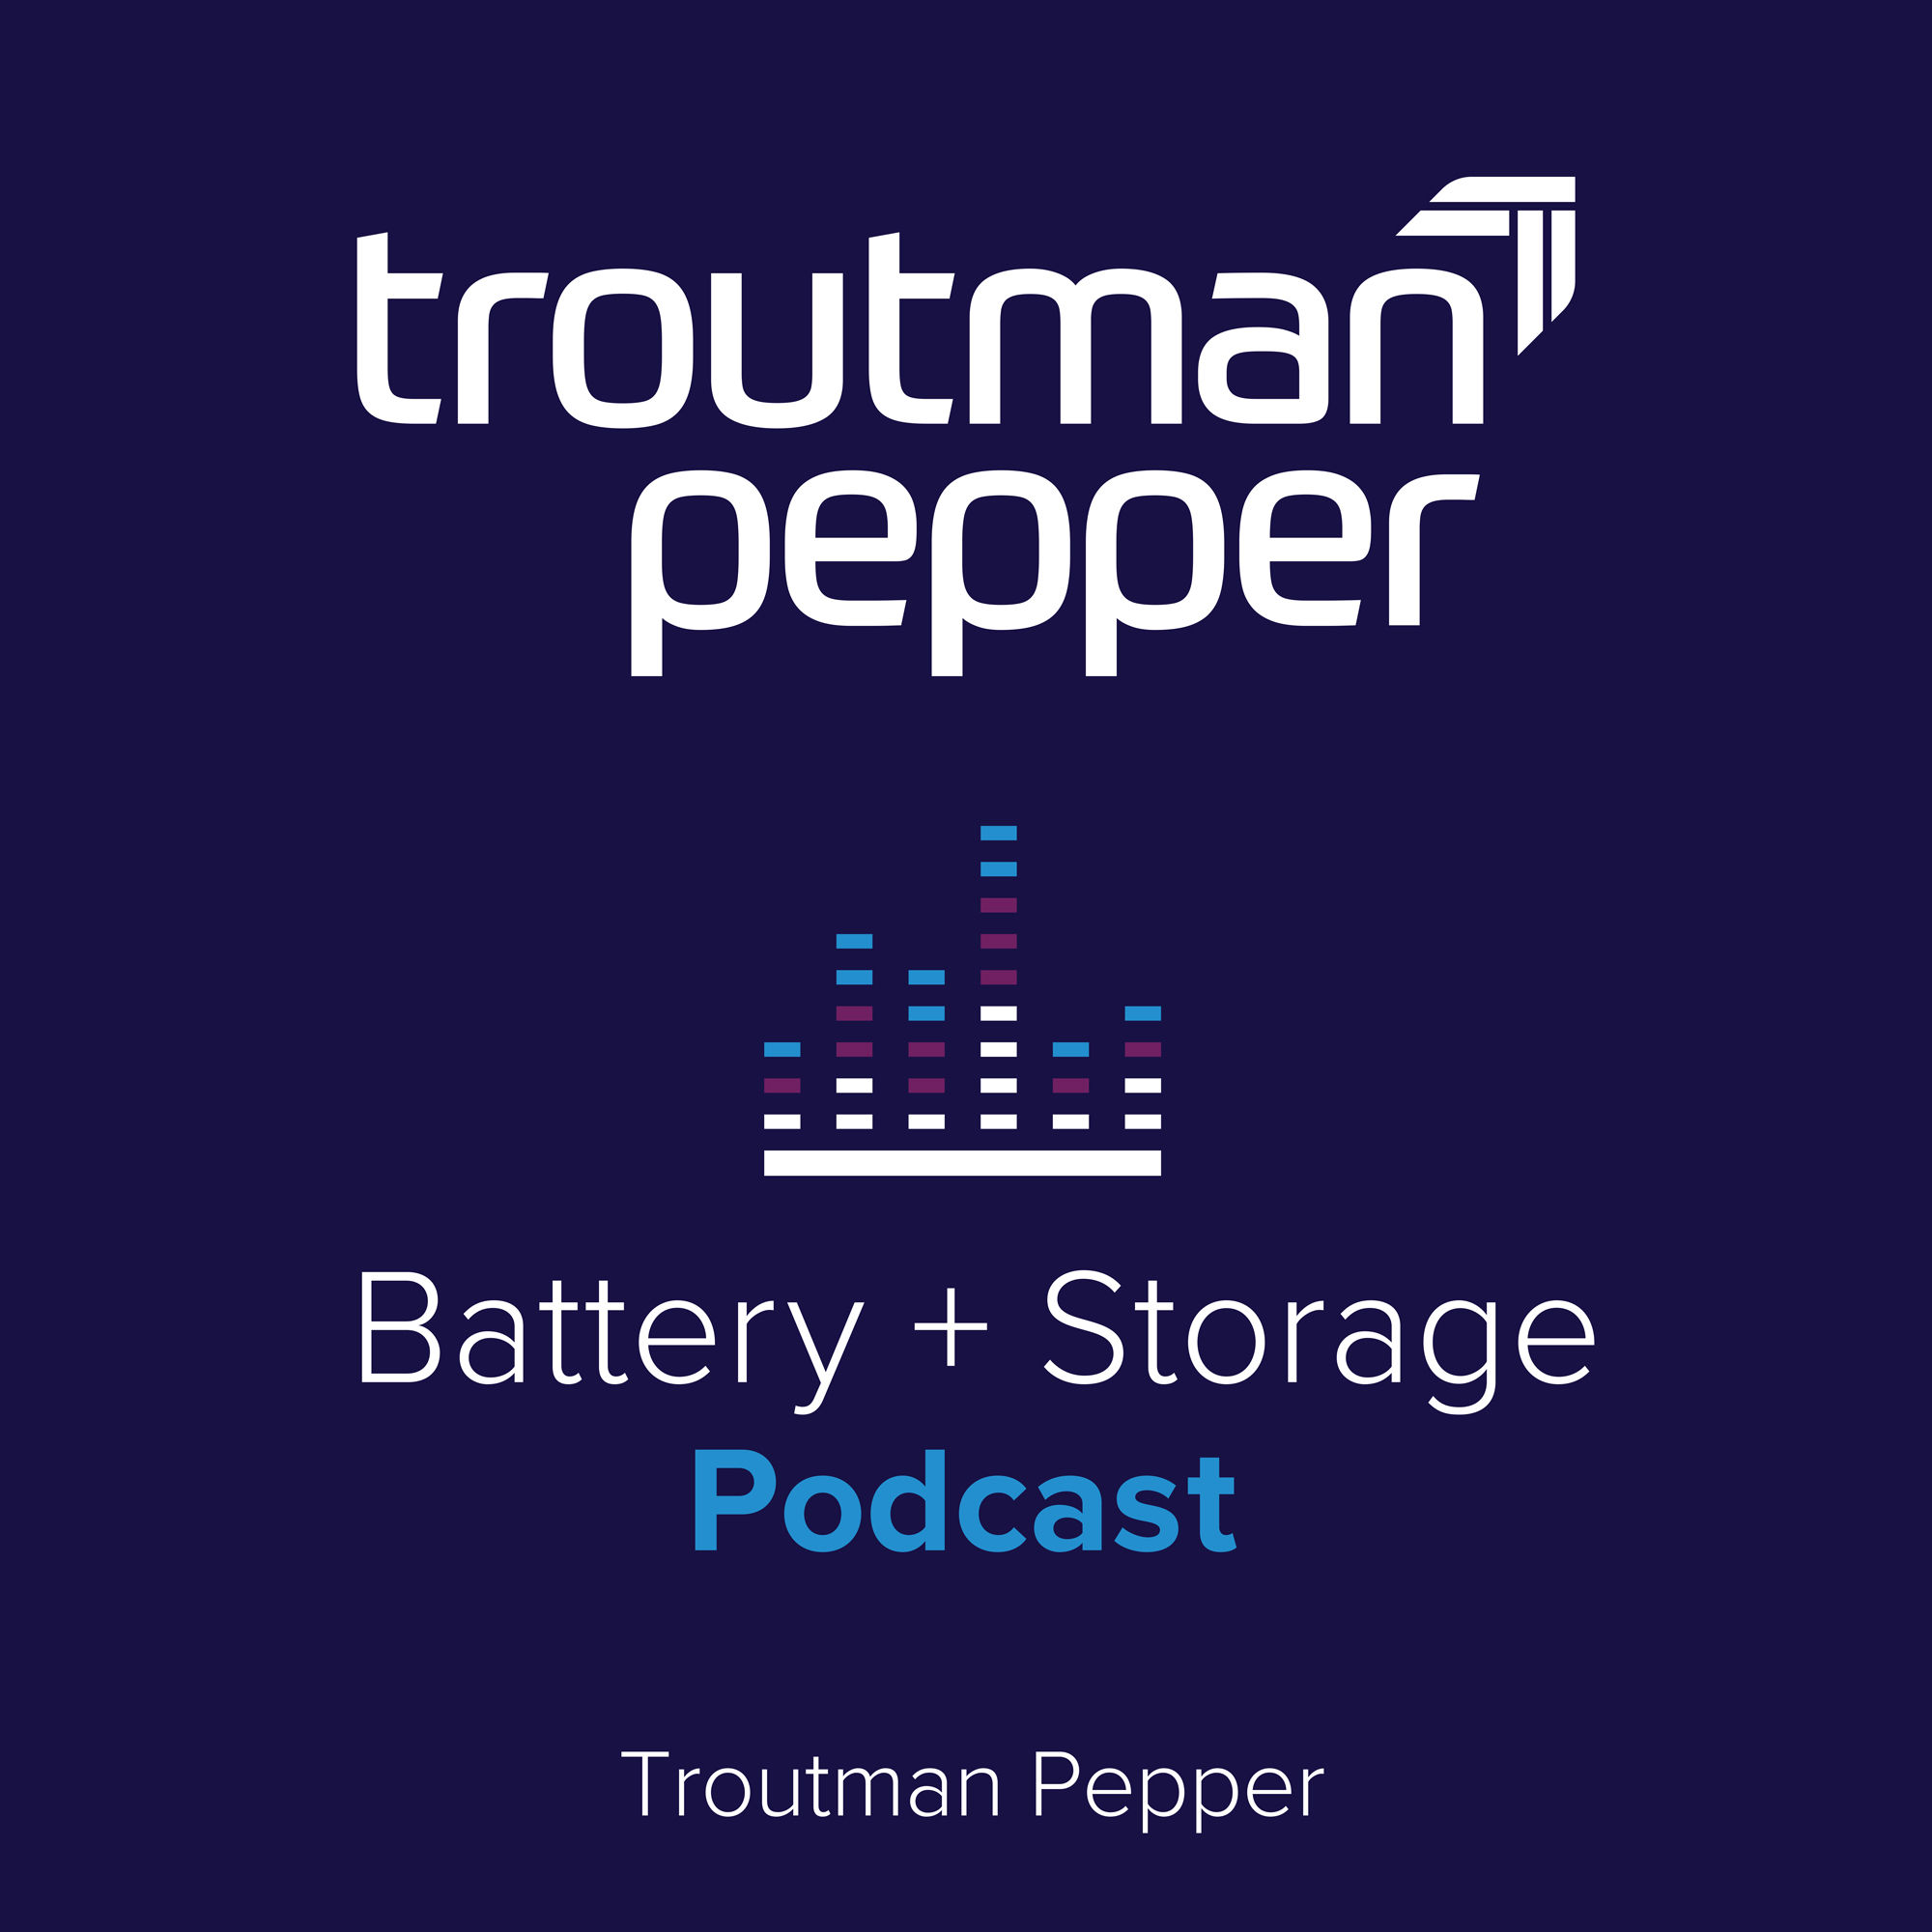 Battery + Storage Podcast